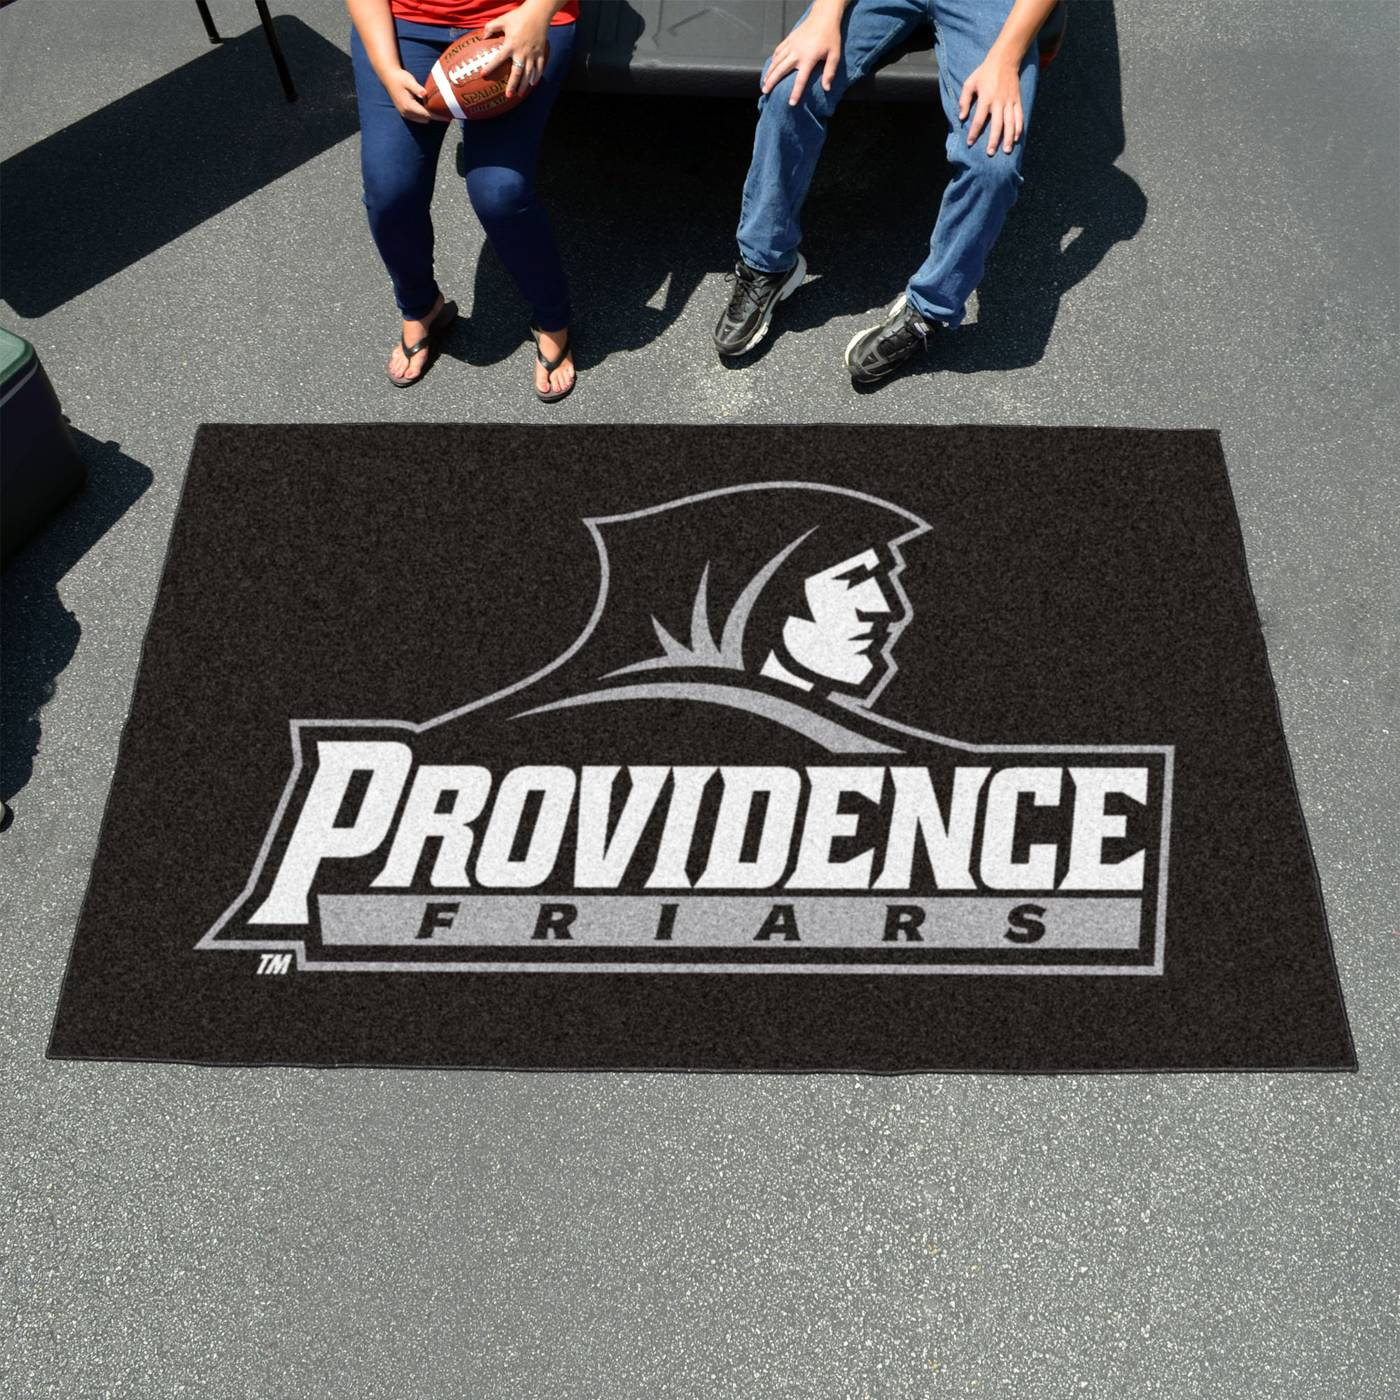 Friars Kitchen: Providence Friars Ulti-Mat Area Rug